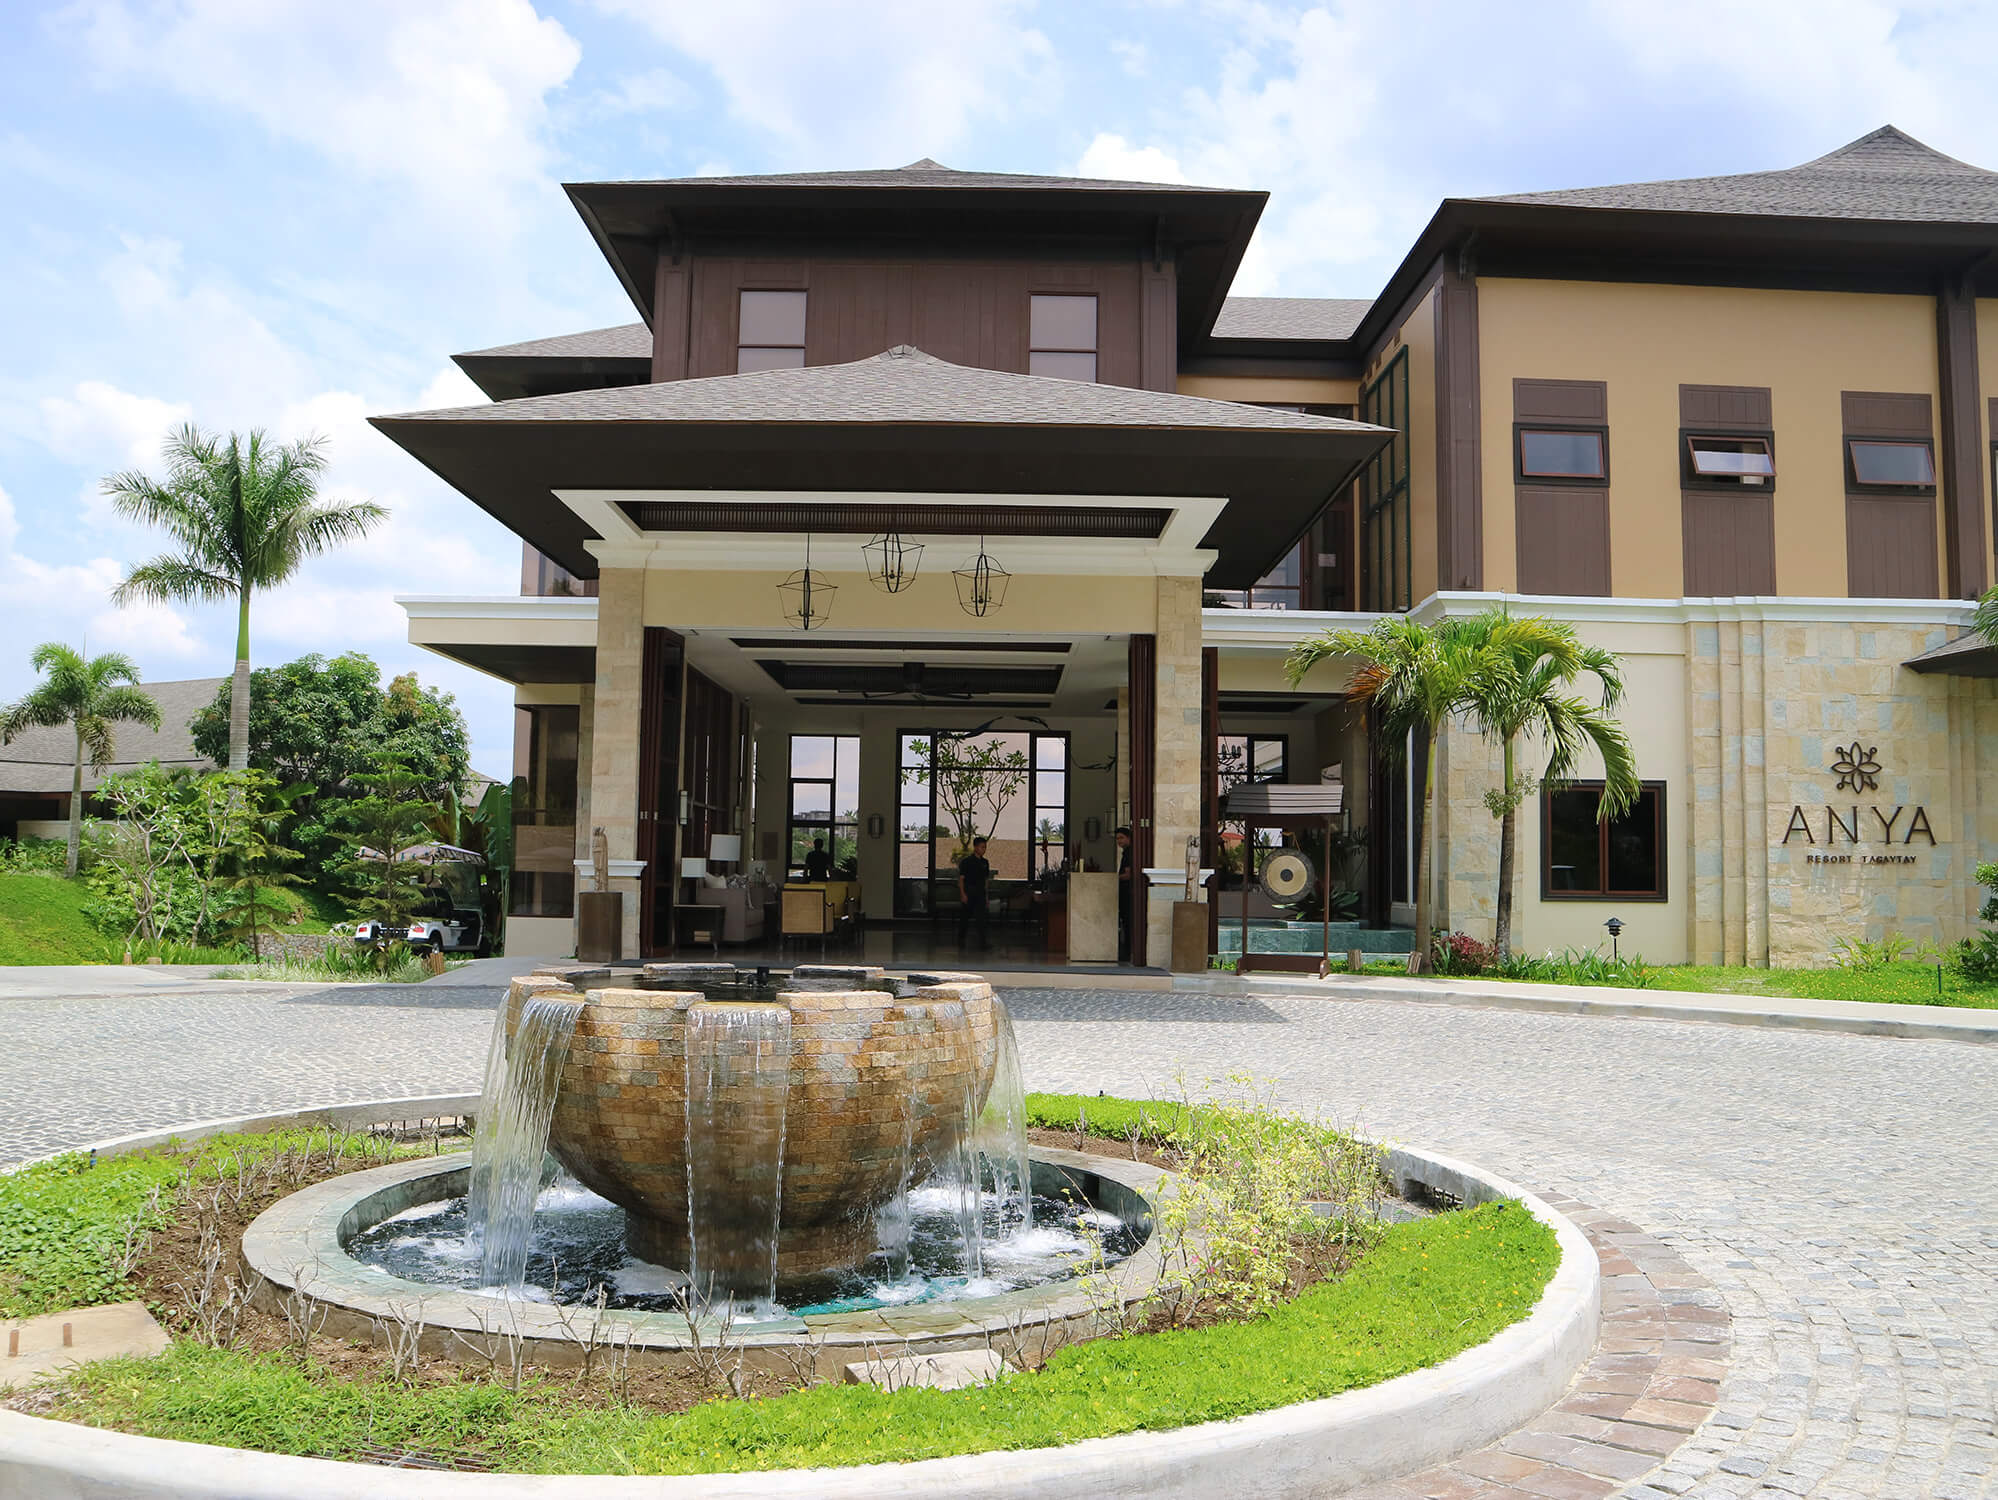 A Taste of Luxury at Anya Resort Tagaytay - Hungry Travel Duo